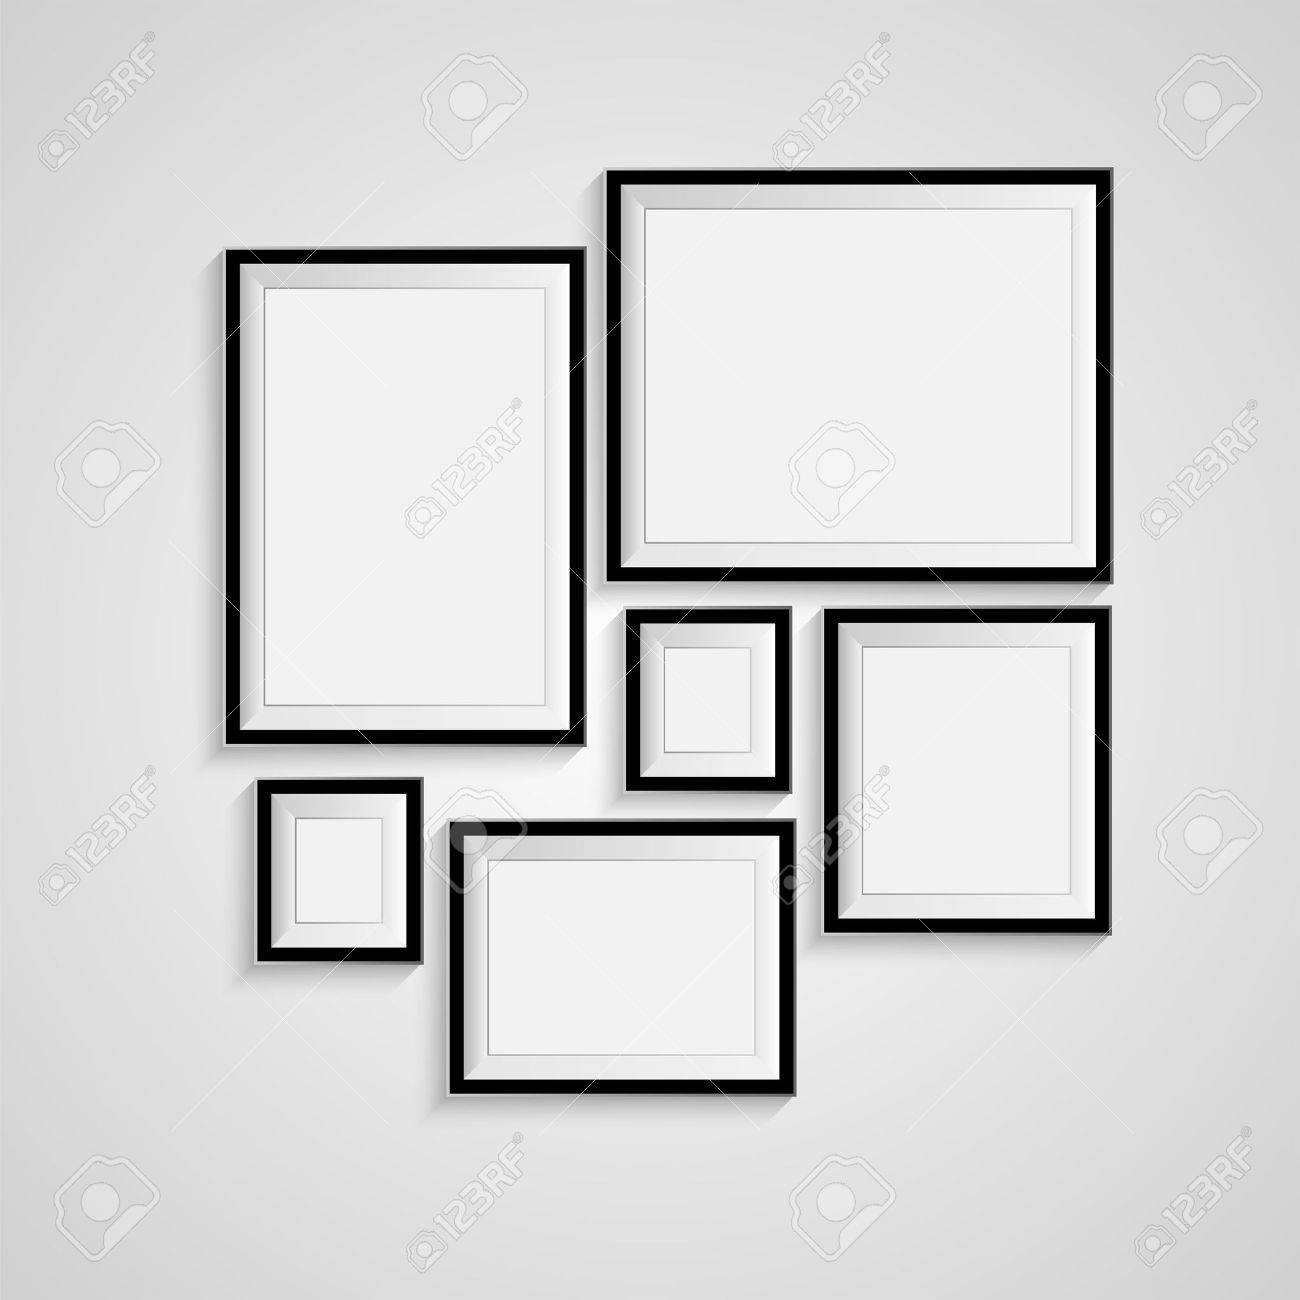 Blank picture frame template set isolated on wall - 36618186